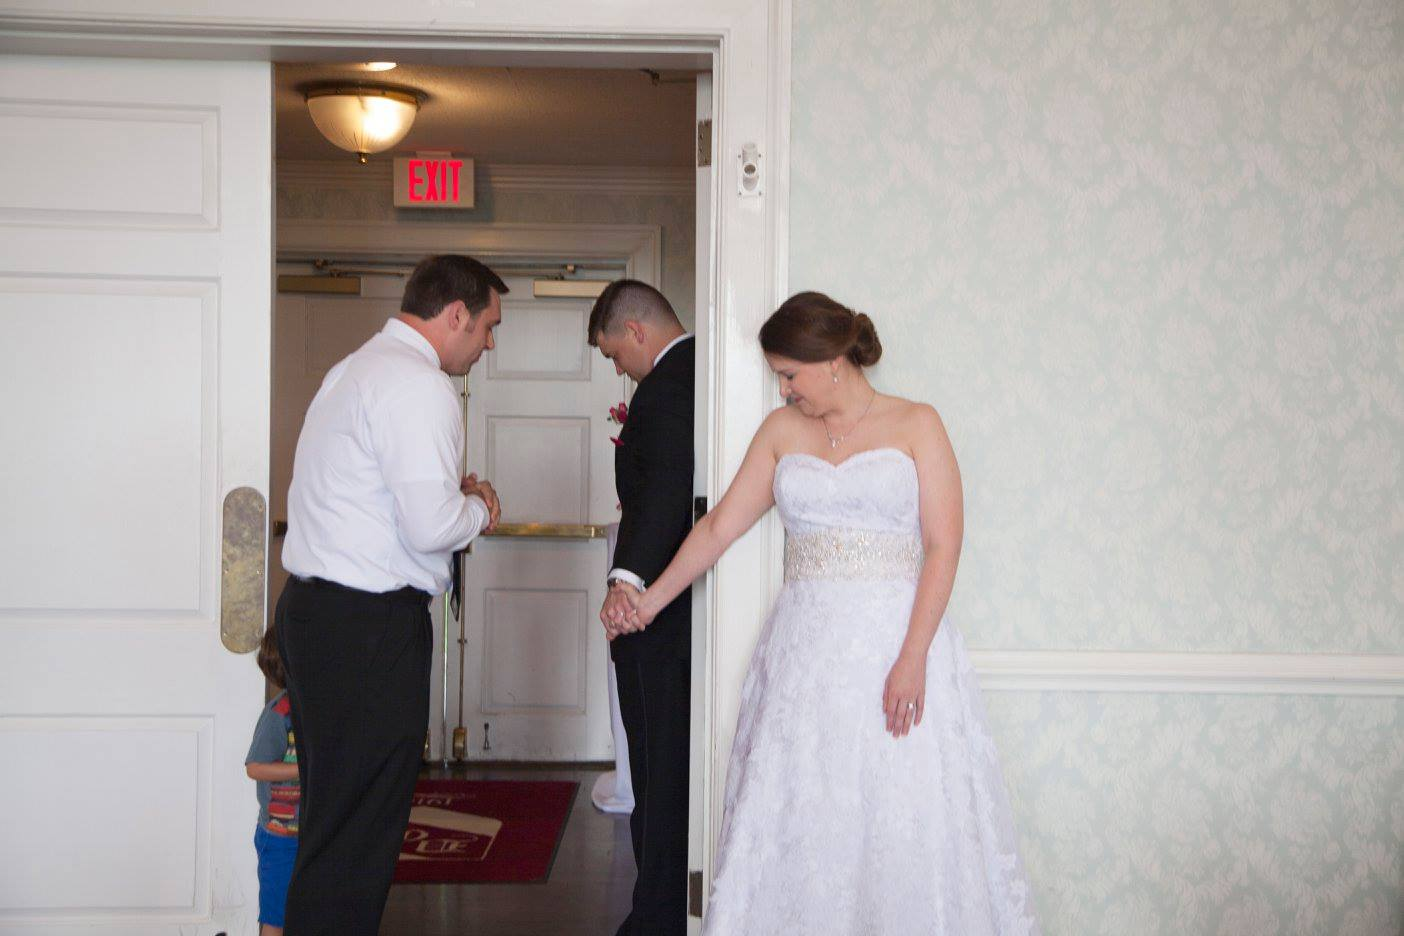 praying together before the wedding